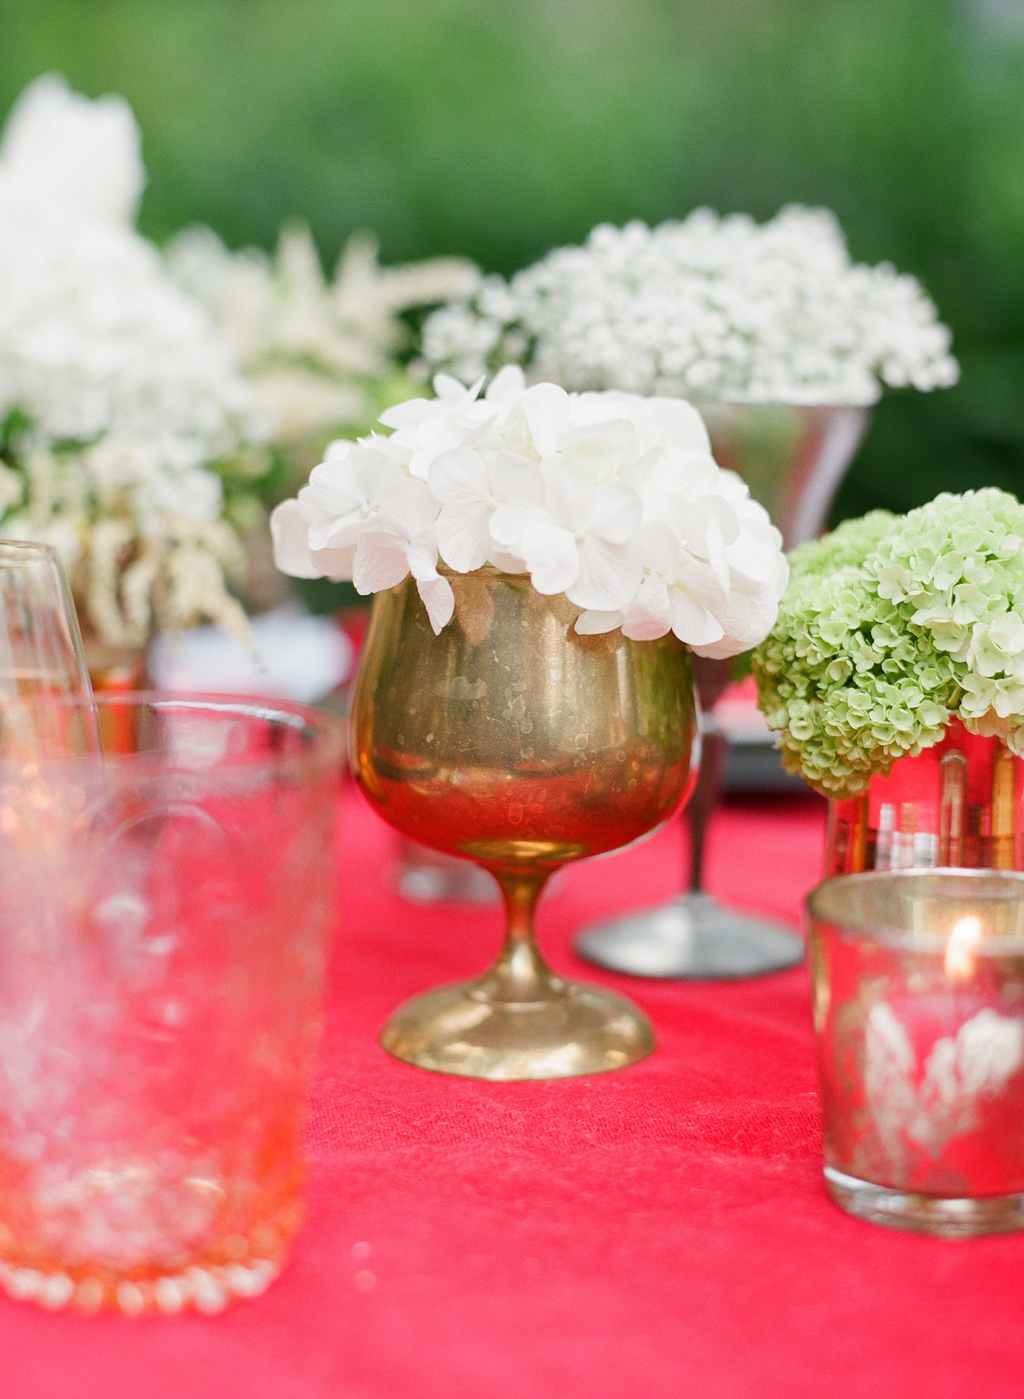 Styled-wedding-santa-barbara-chic-beaux-arts-photographie-italian-bohemian-wedding-venue-table-setting-red-white-flowers-antique-glass-065.full